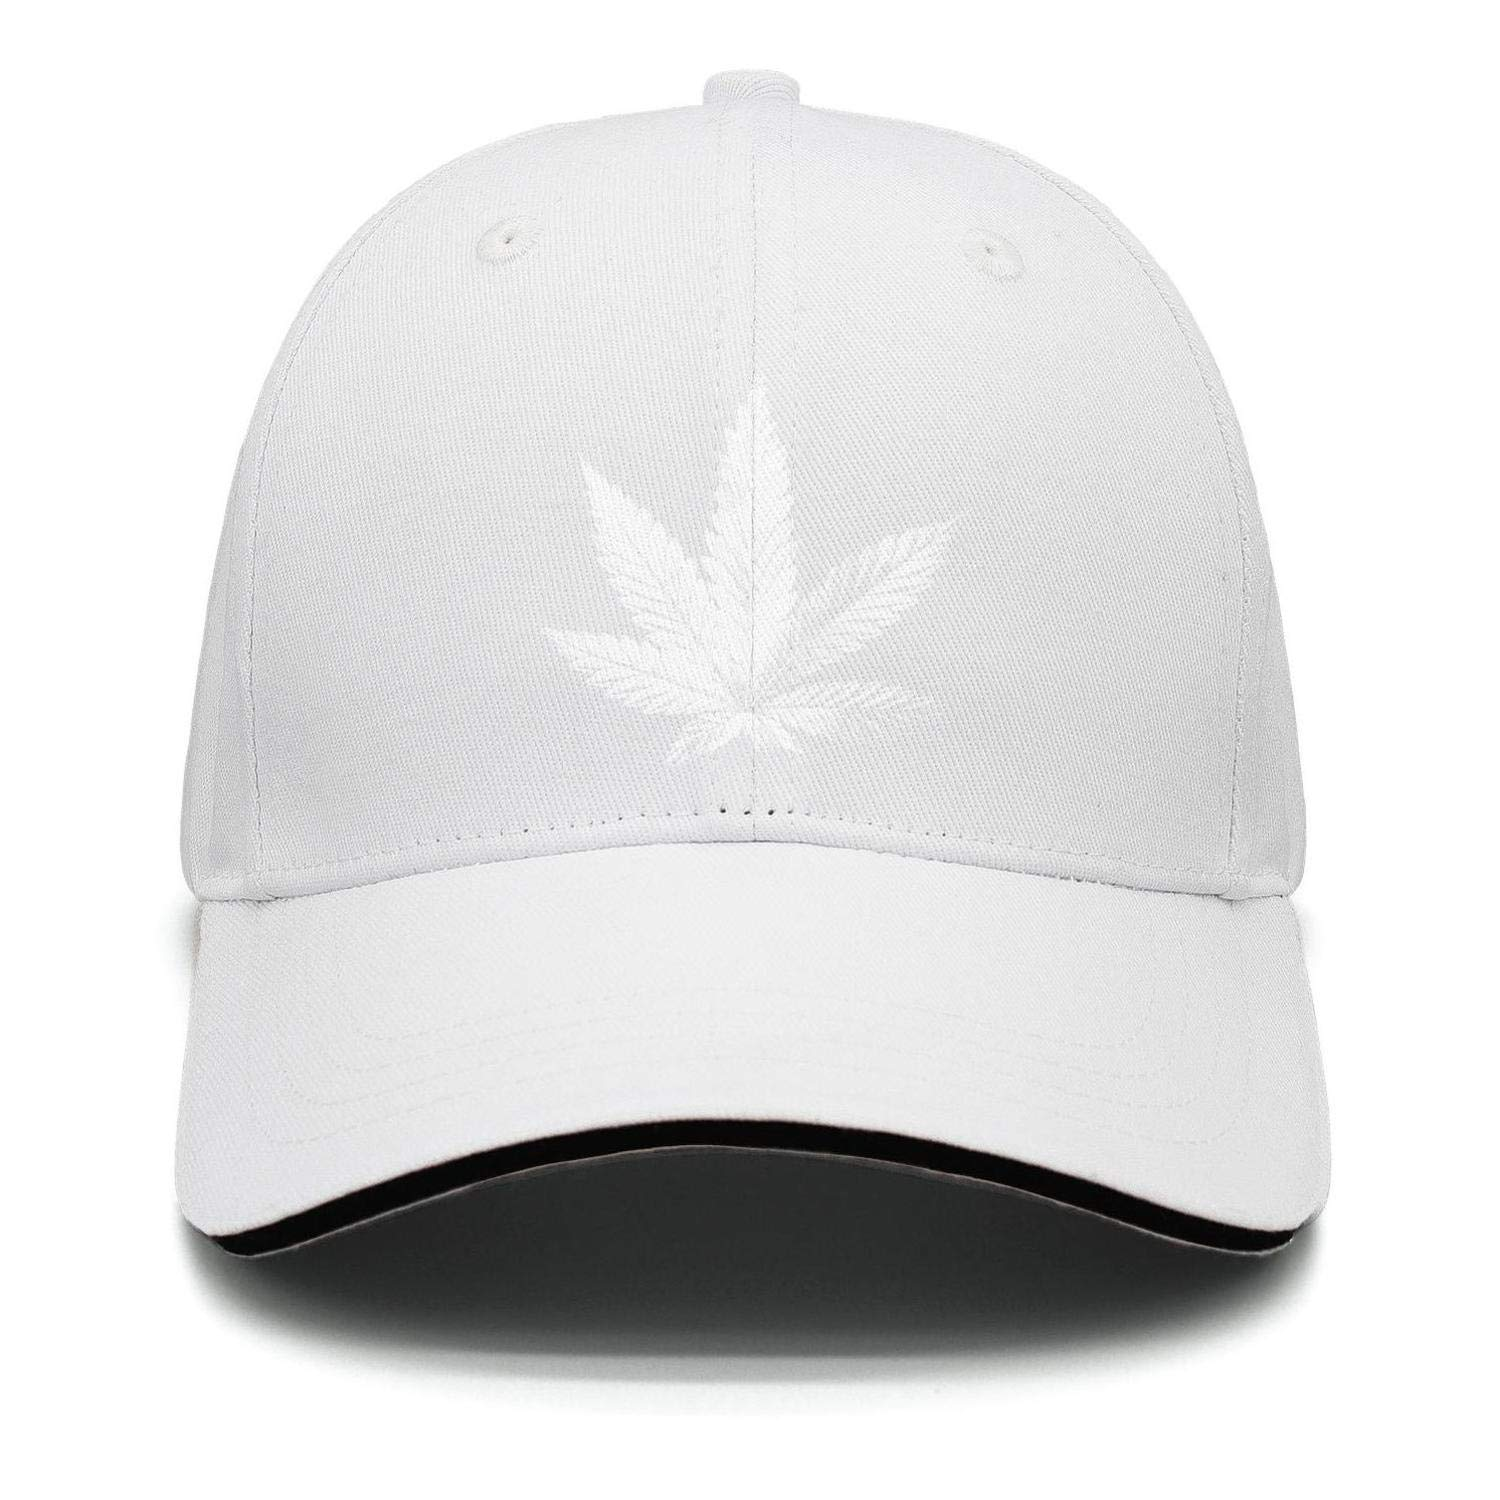 Golf Hat Adjustable Marijuana Cannabis Leaf Logo Unisex Snapback All Low Profile